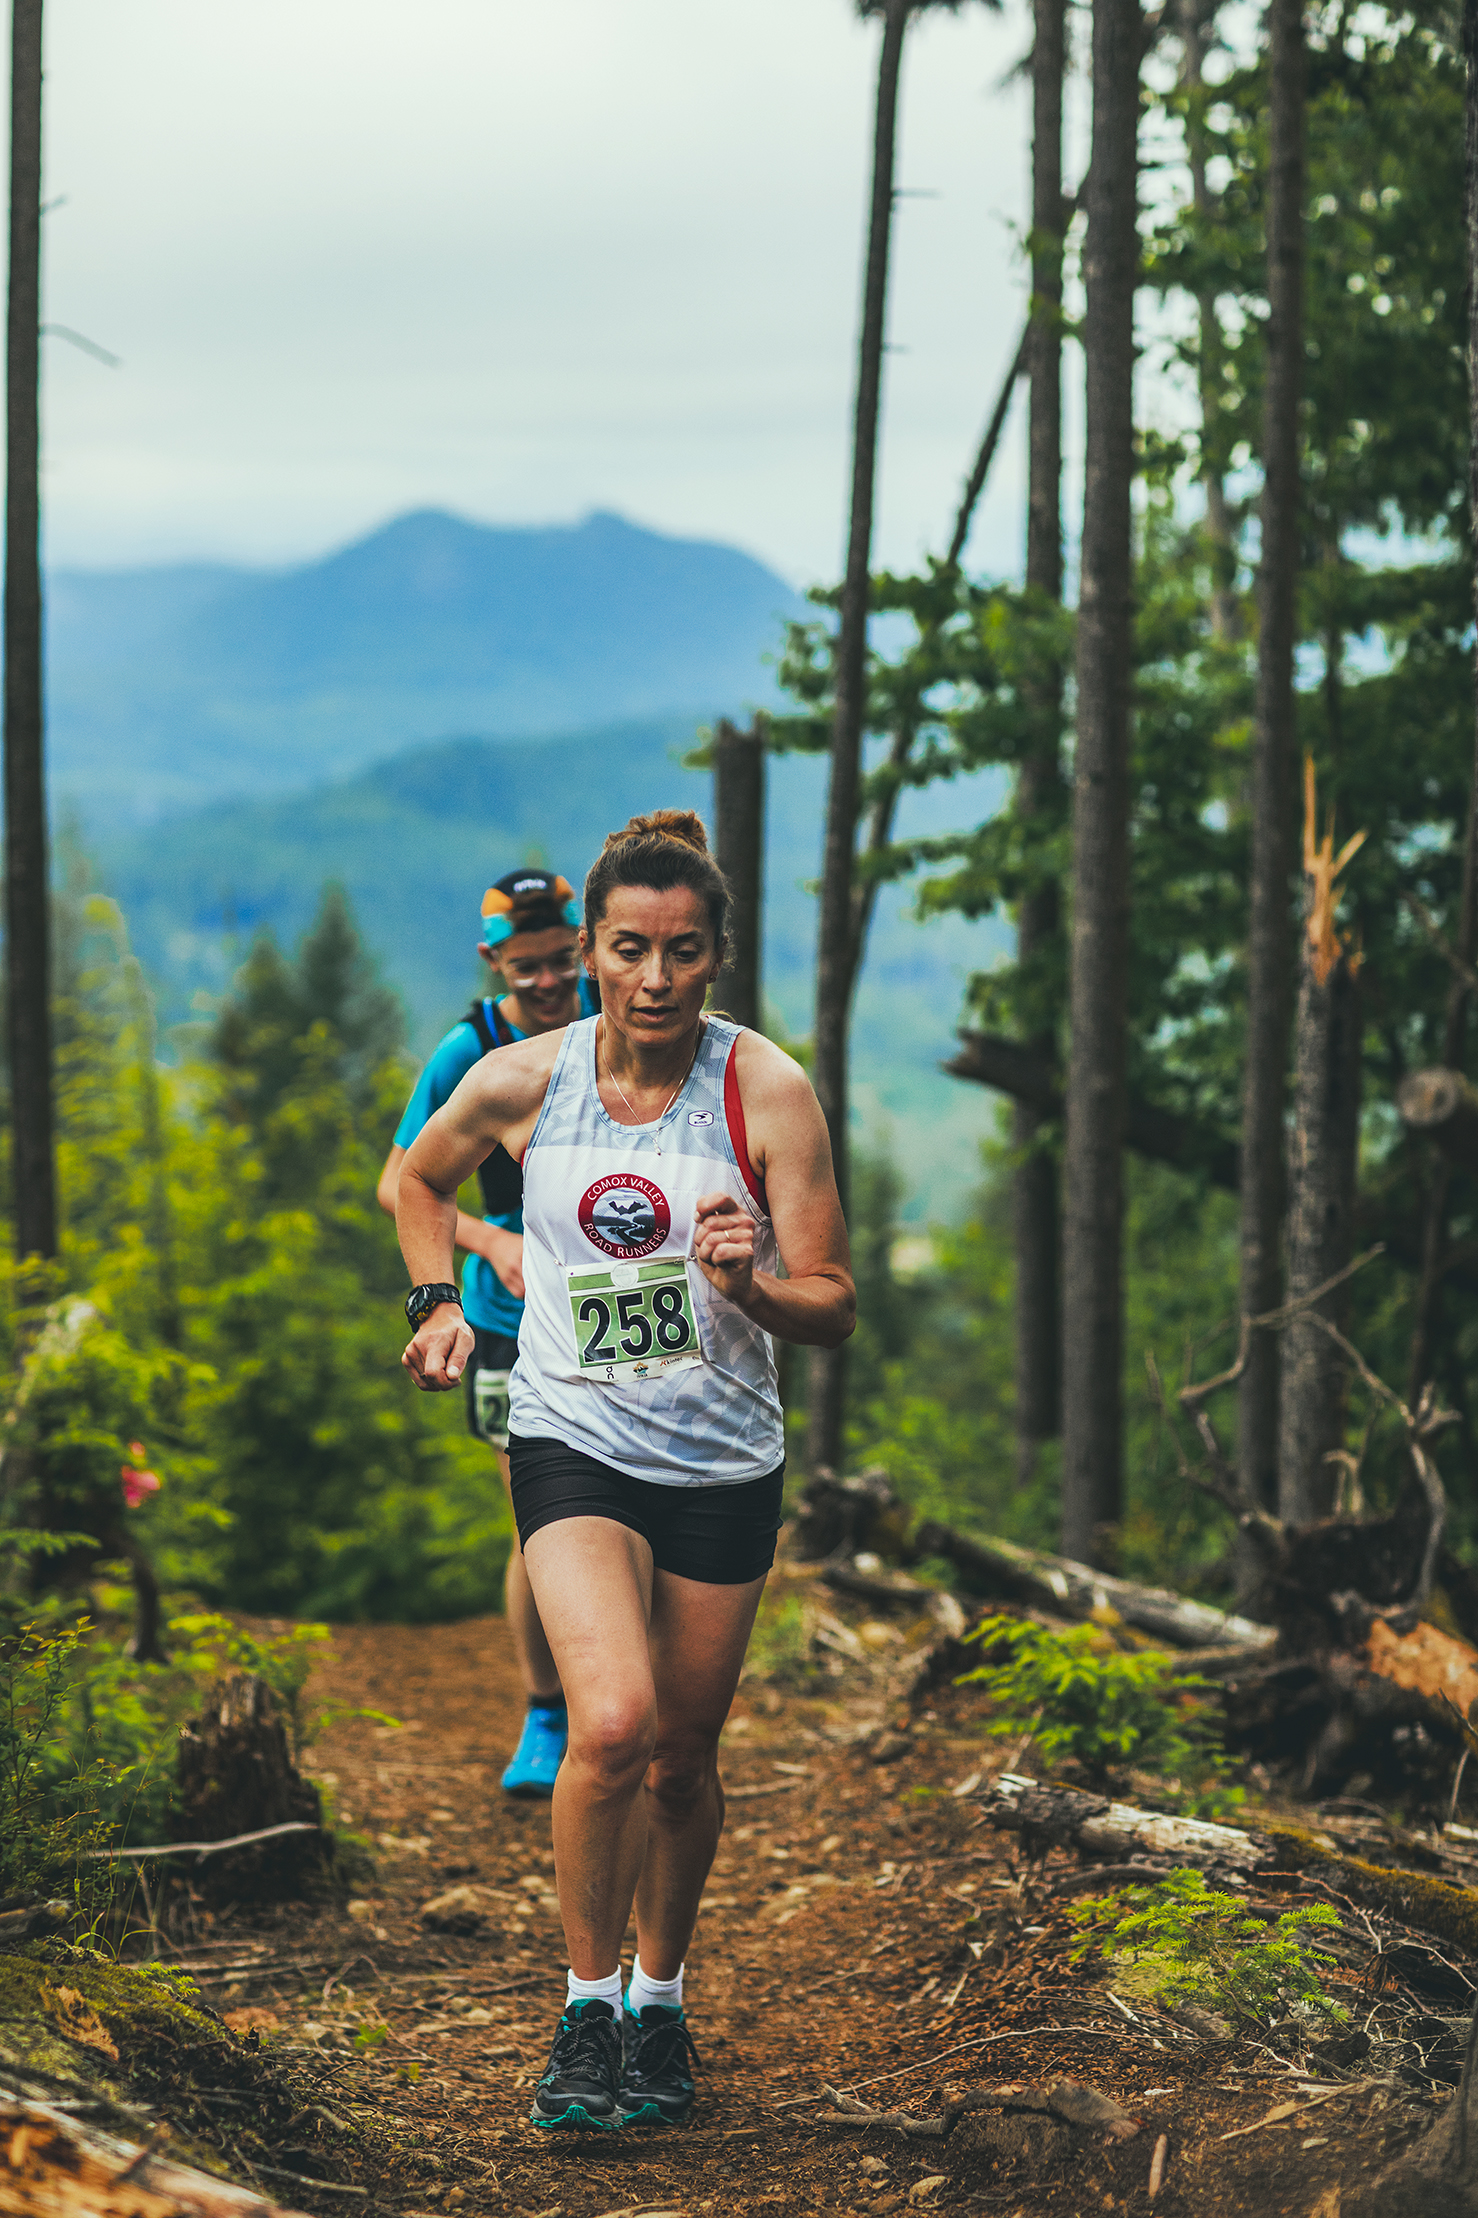 Fraser Valley Trail Races - Bear Mountain - IMG_1667 by Brice Ferre Studio - Vancouver Portrait Adventure and Athlete Photographer.jpg